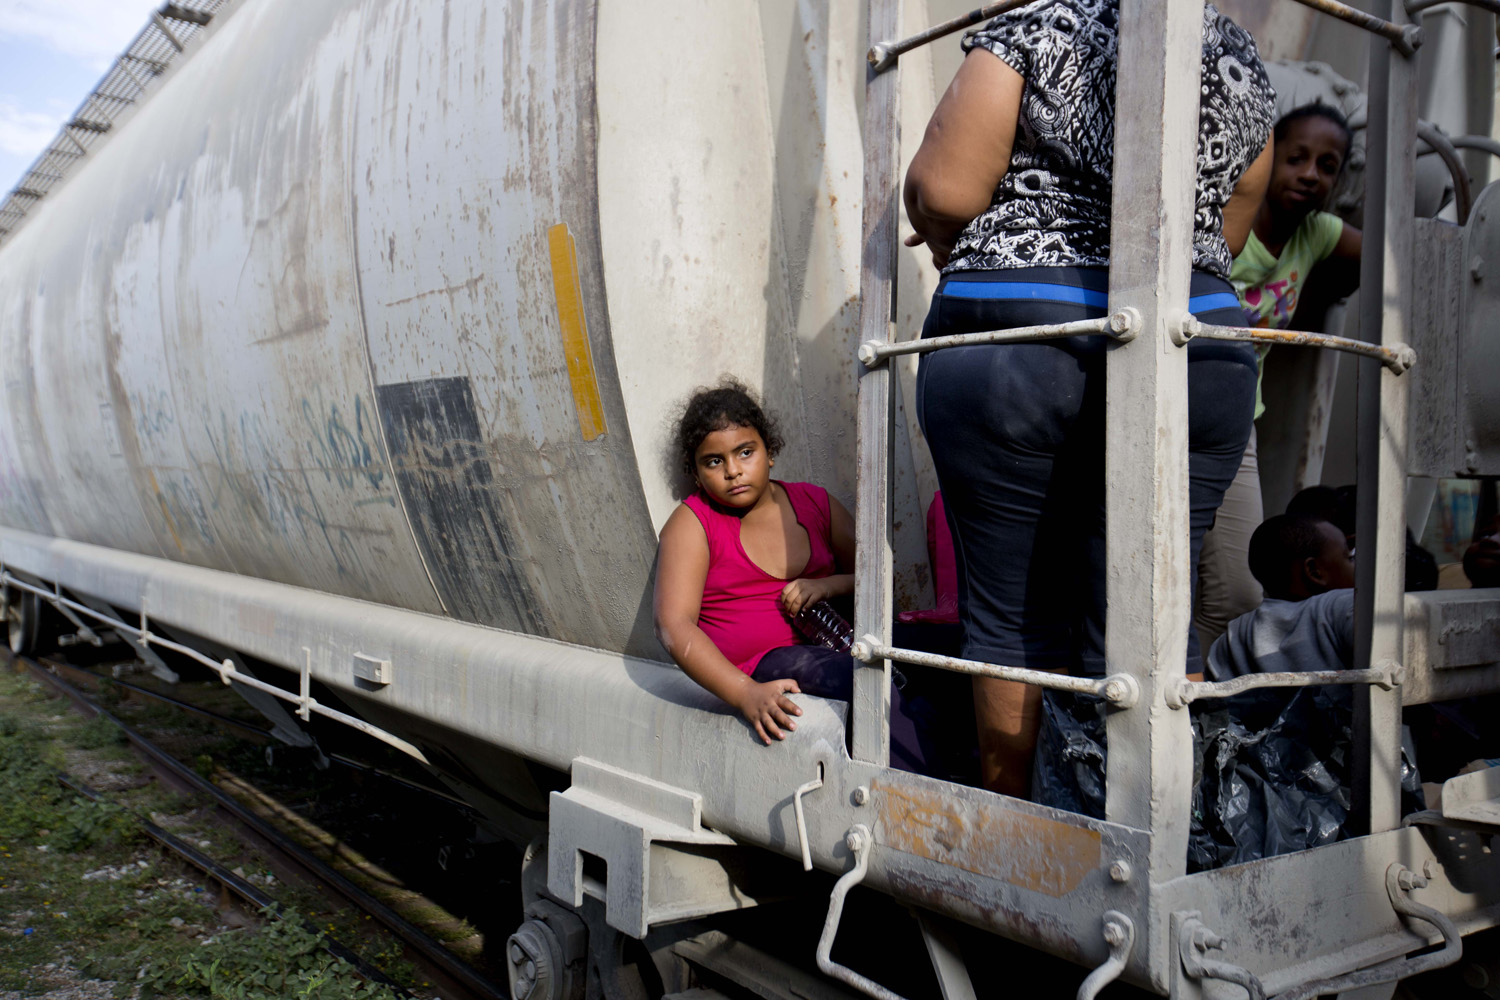 A young girl from Honduras waits for a northbound freight train to depart in Mexico as she makes her way to the U.S. border